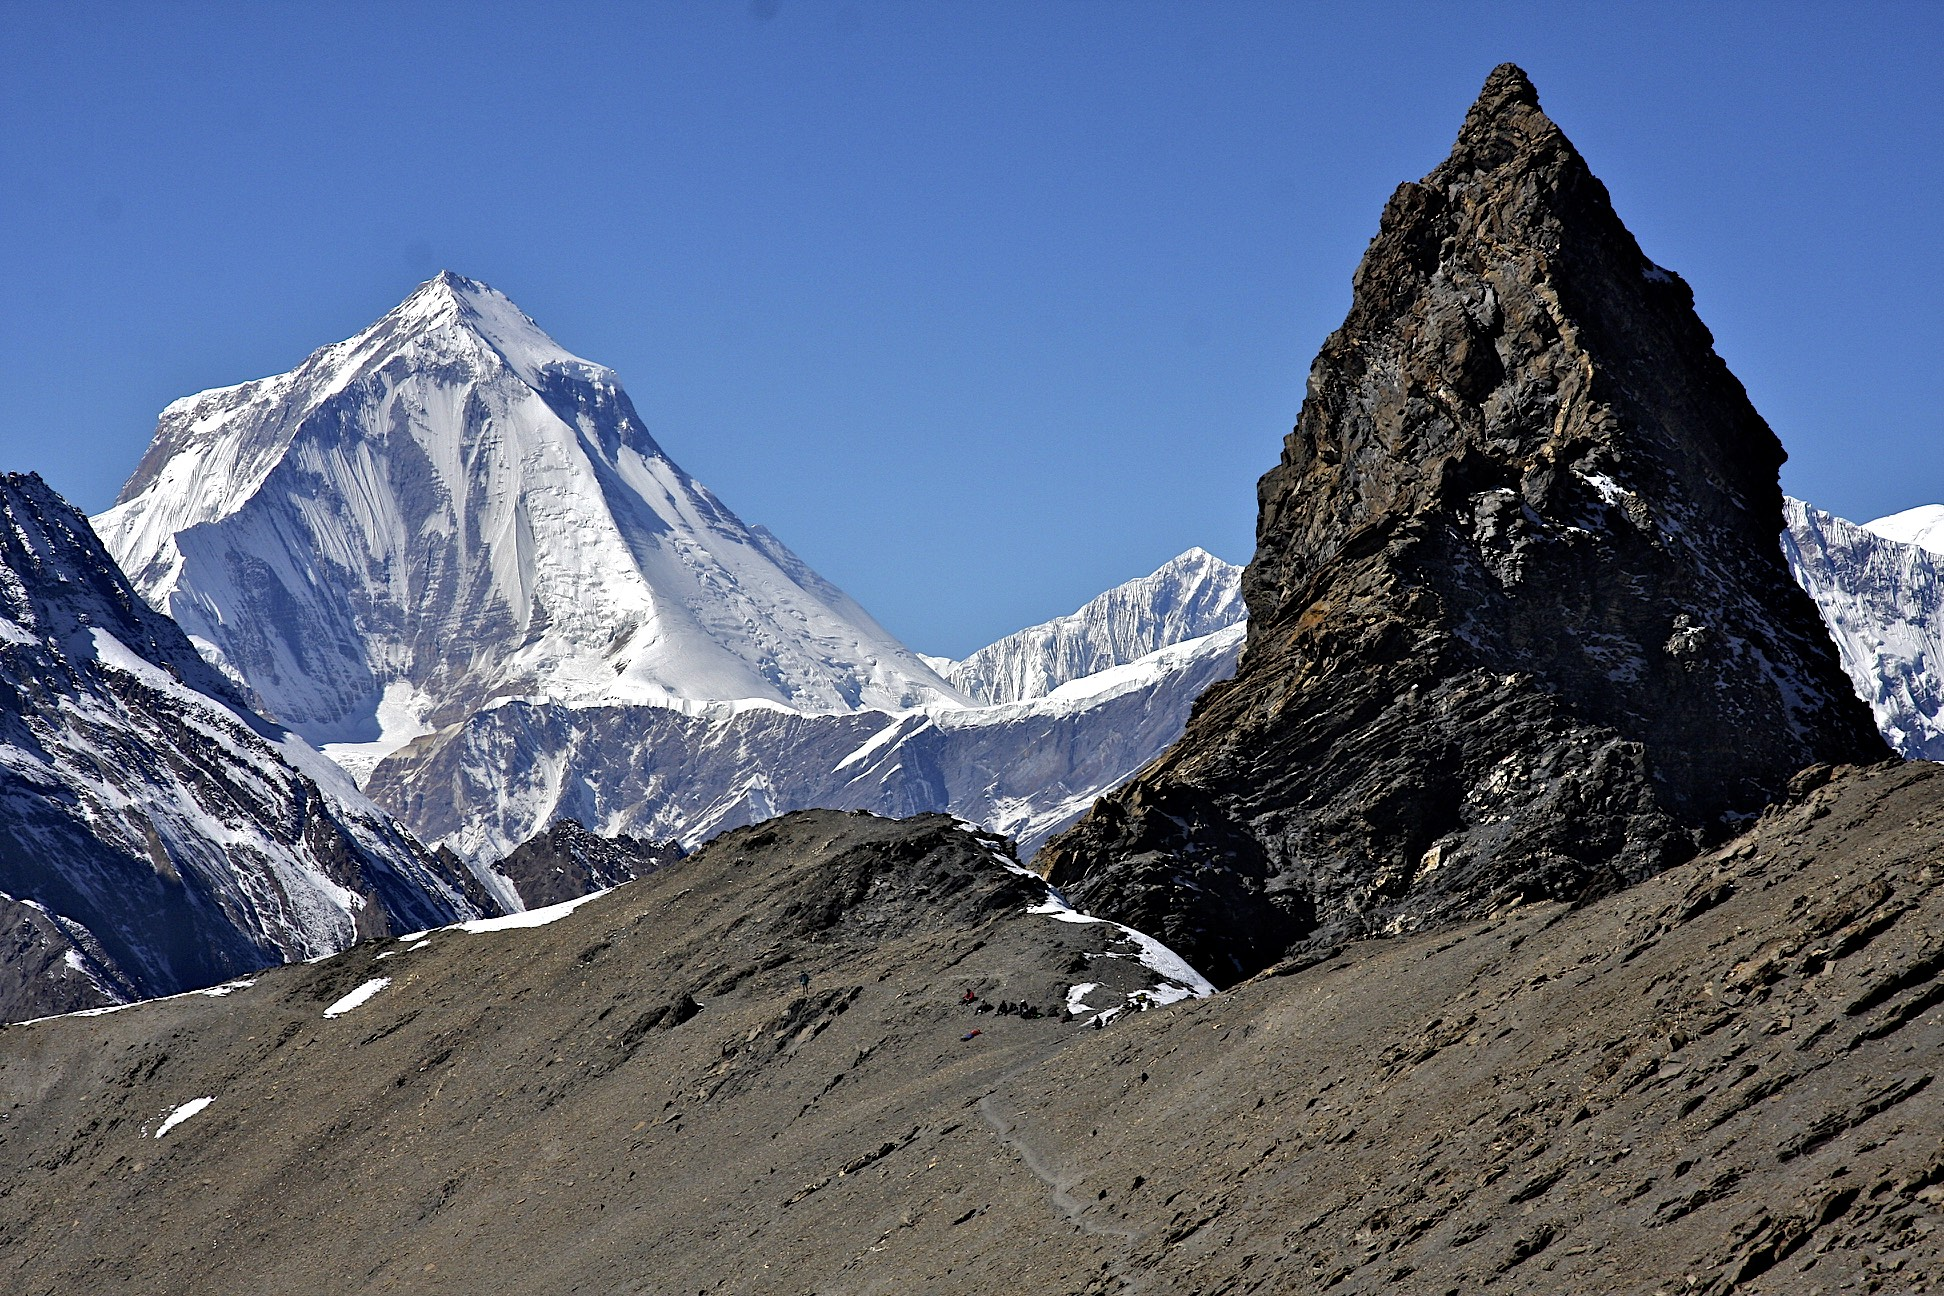 Mesocanto Pass and Dhaulagiri I